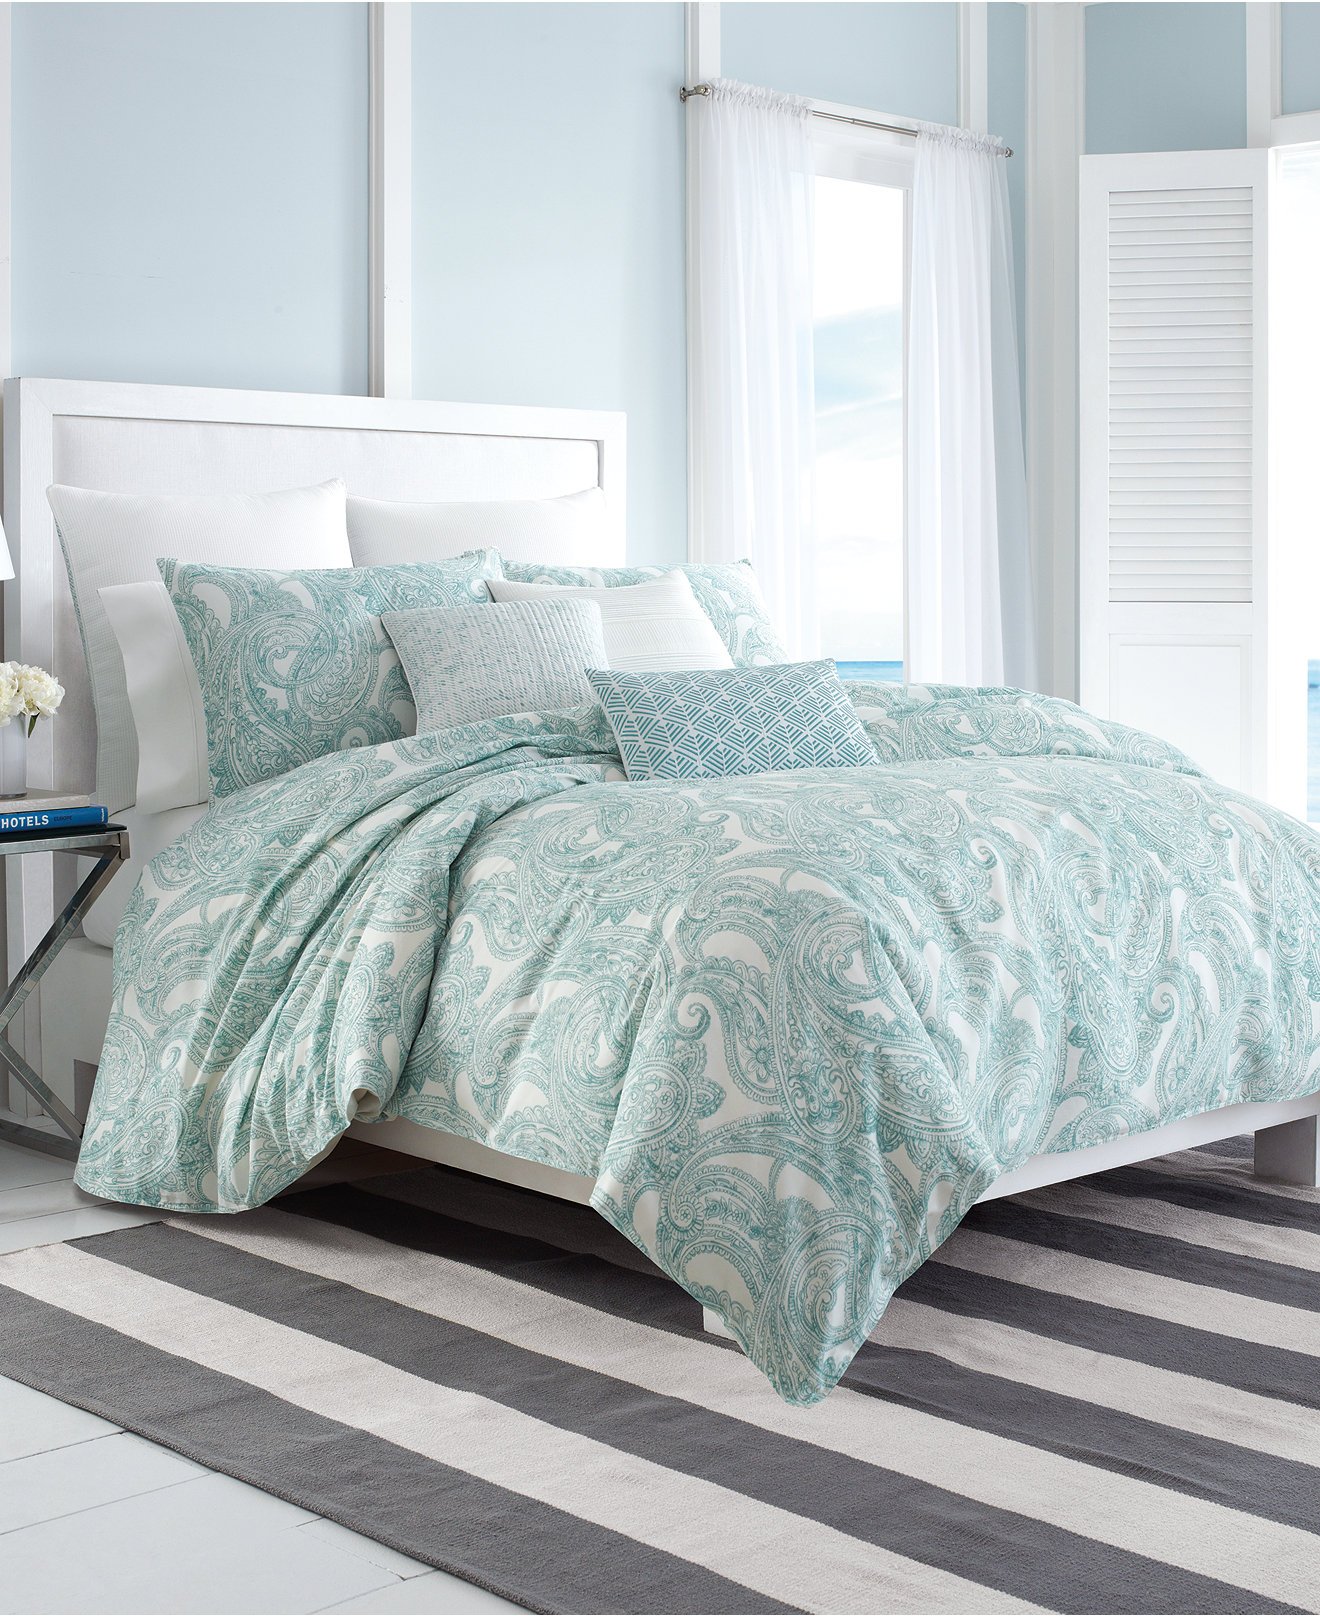 Nautica Long Bay European Sham - Bedding Collections - Bed & Bath - Macy's Bridal and Wedding Registry